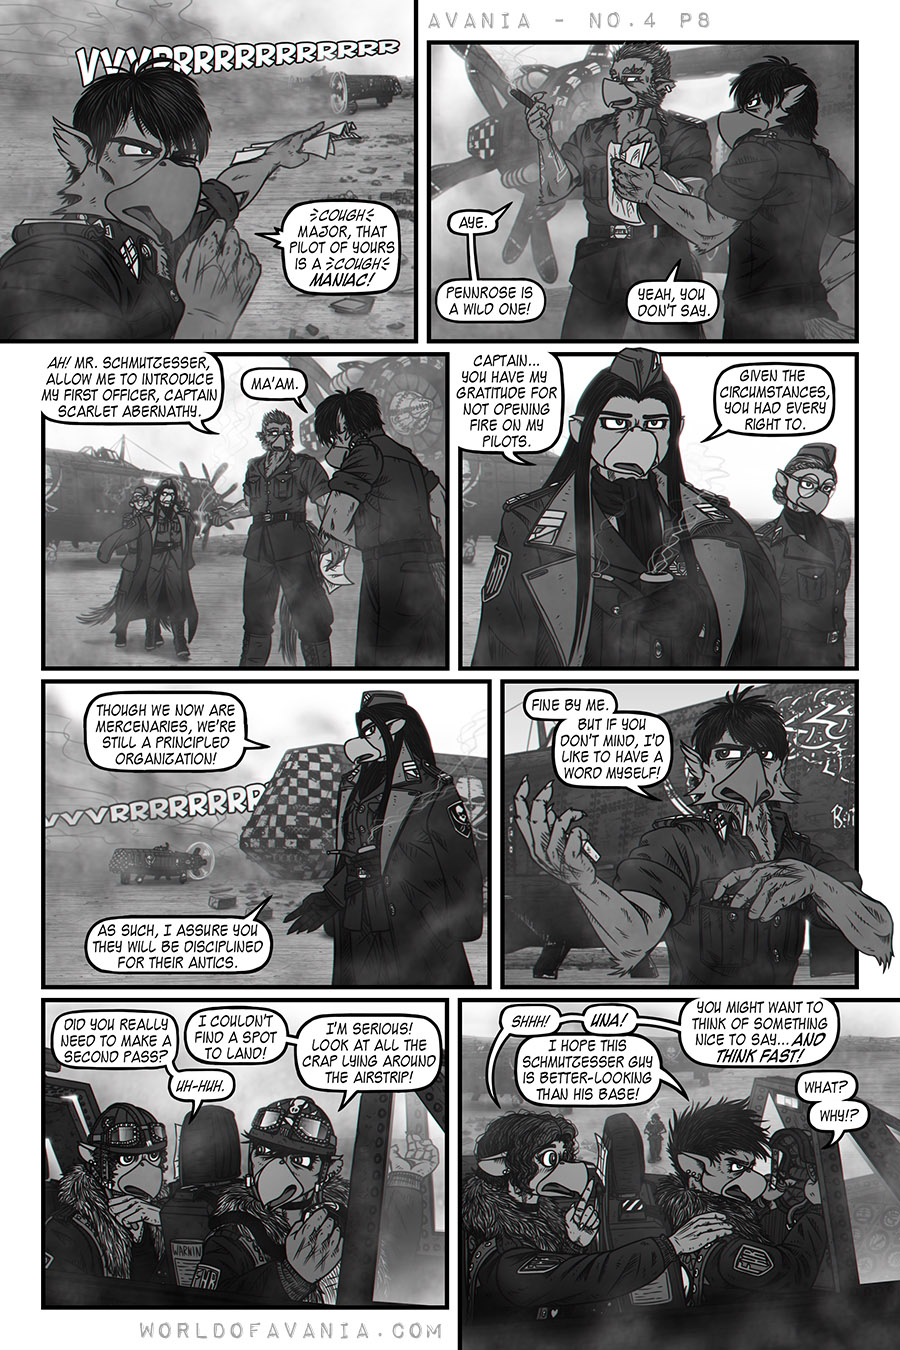 Avania Comic - Issue No.4, Page 8